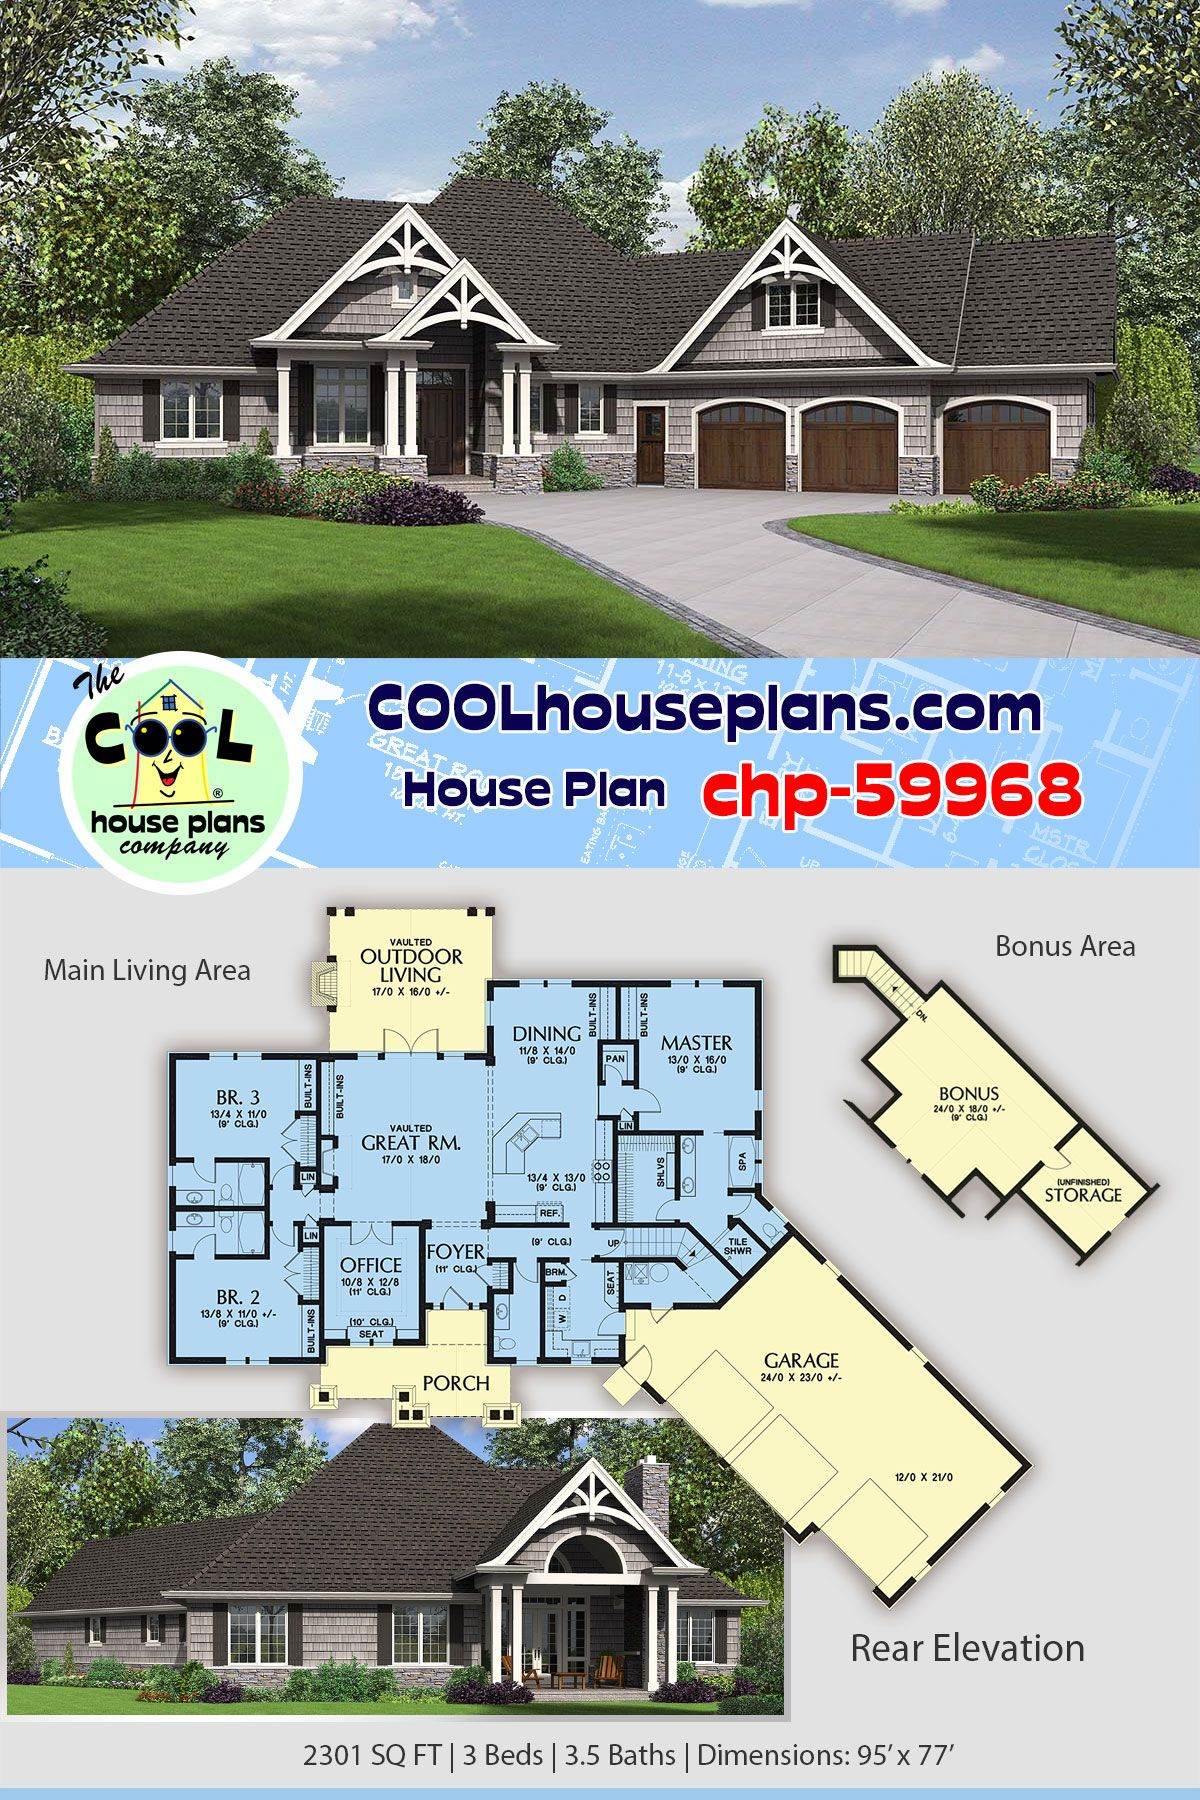 Craftsman Style House Plan 81218 With 3 Bed 4 Bath 3 Car Garage Craftsman House Plans Craftsman Style House Plans Craftsman Floor Plans